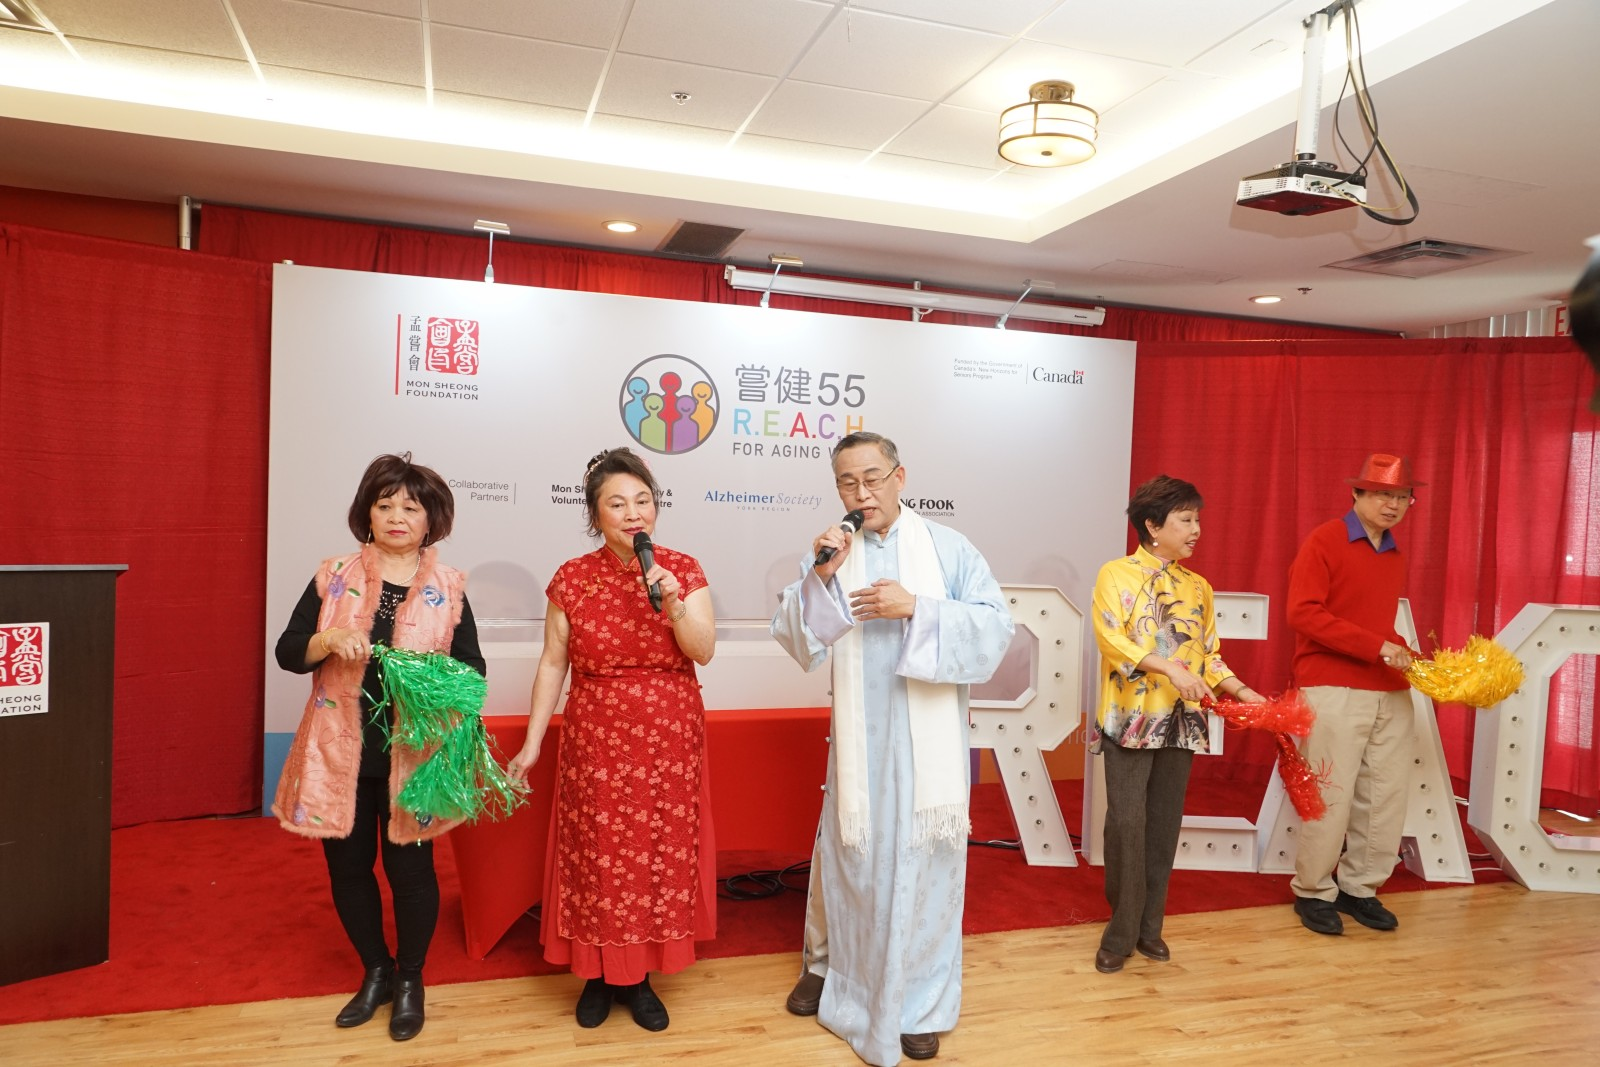 Performers coming from Mon Sheong Community & Volunteer Services Centre